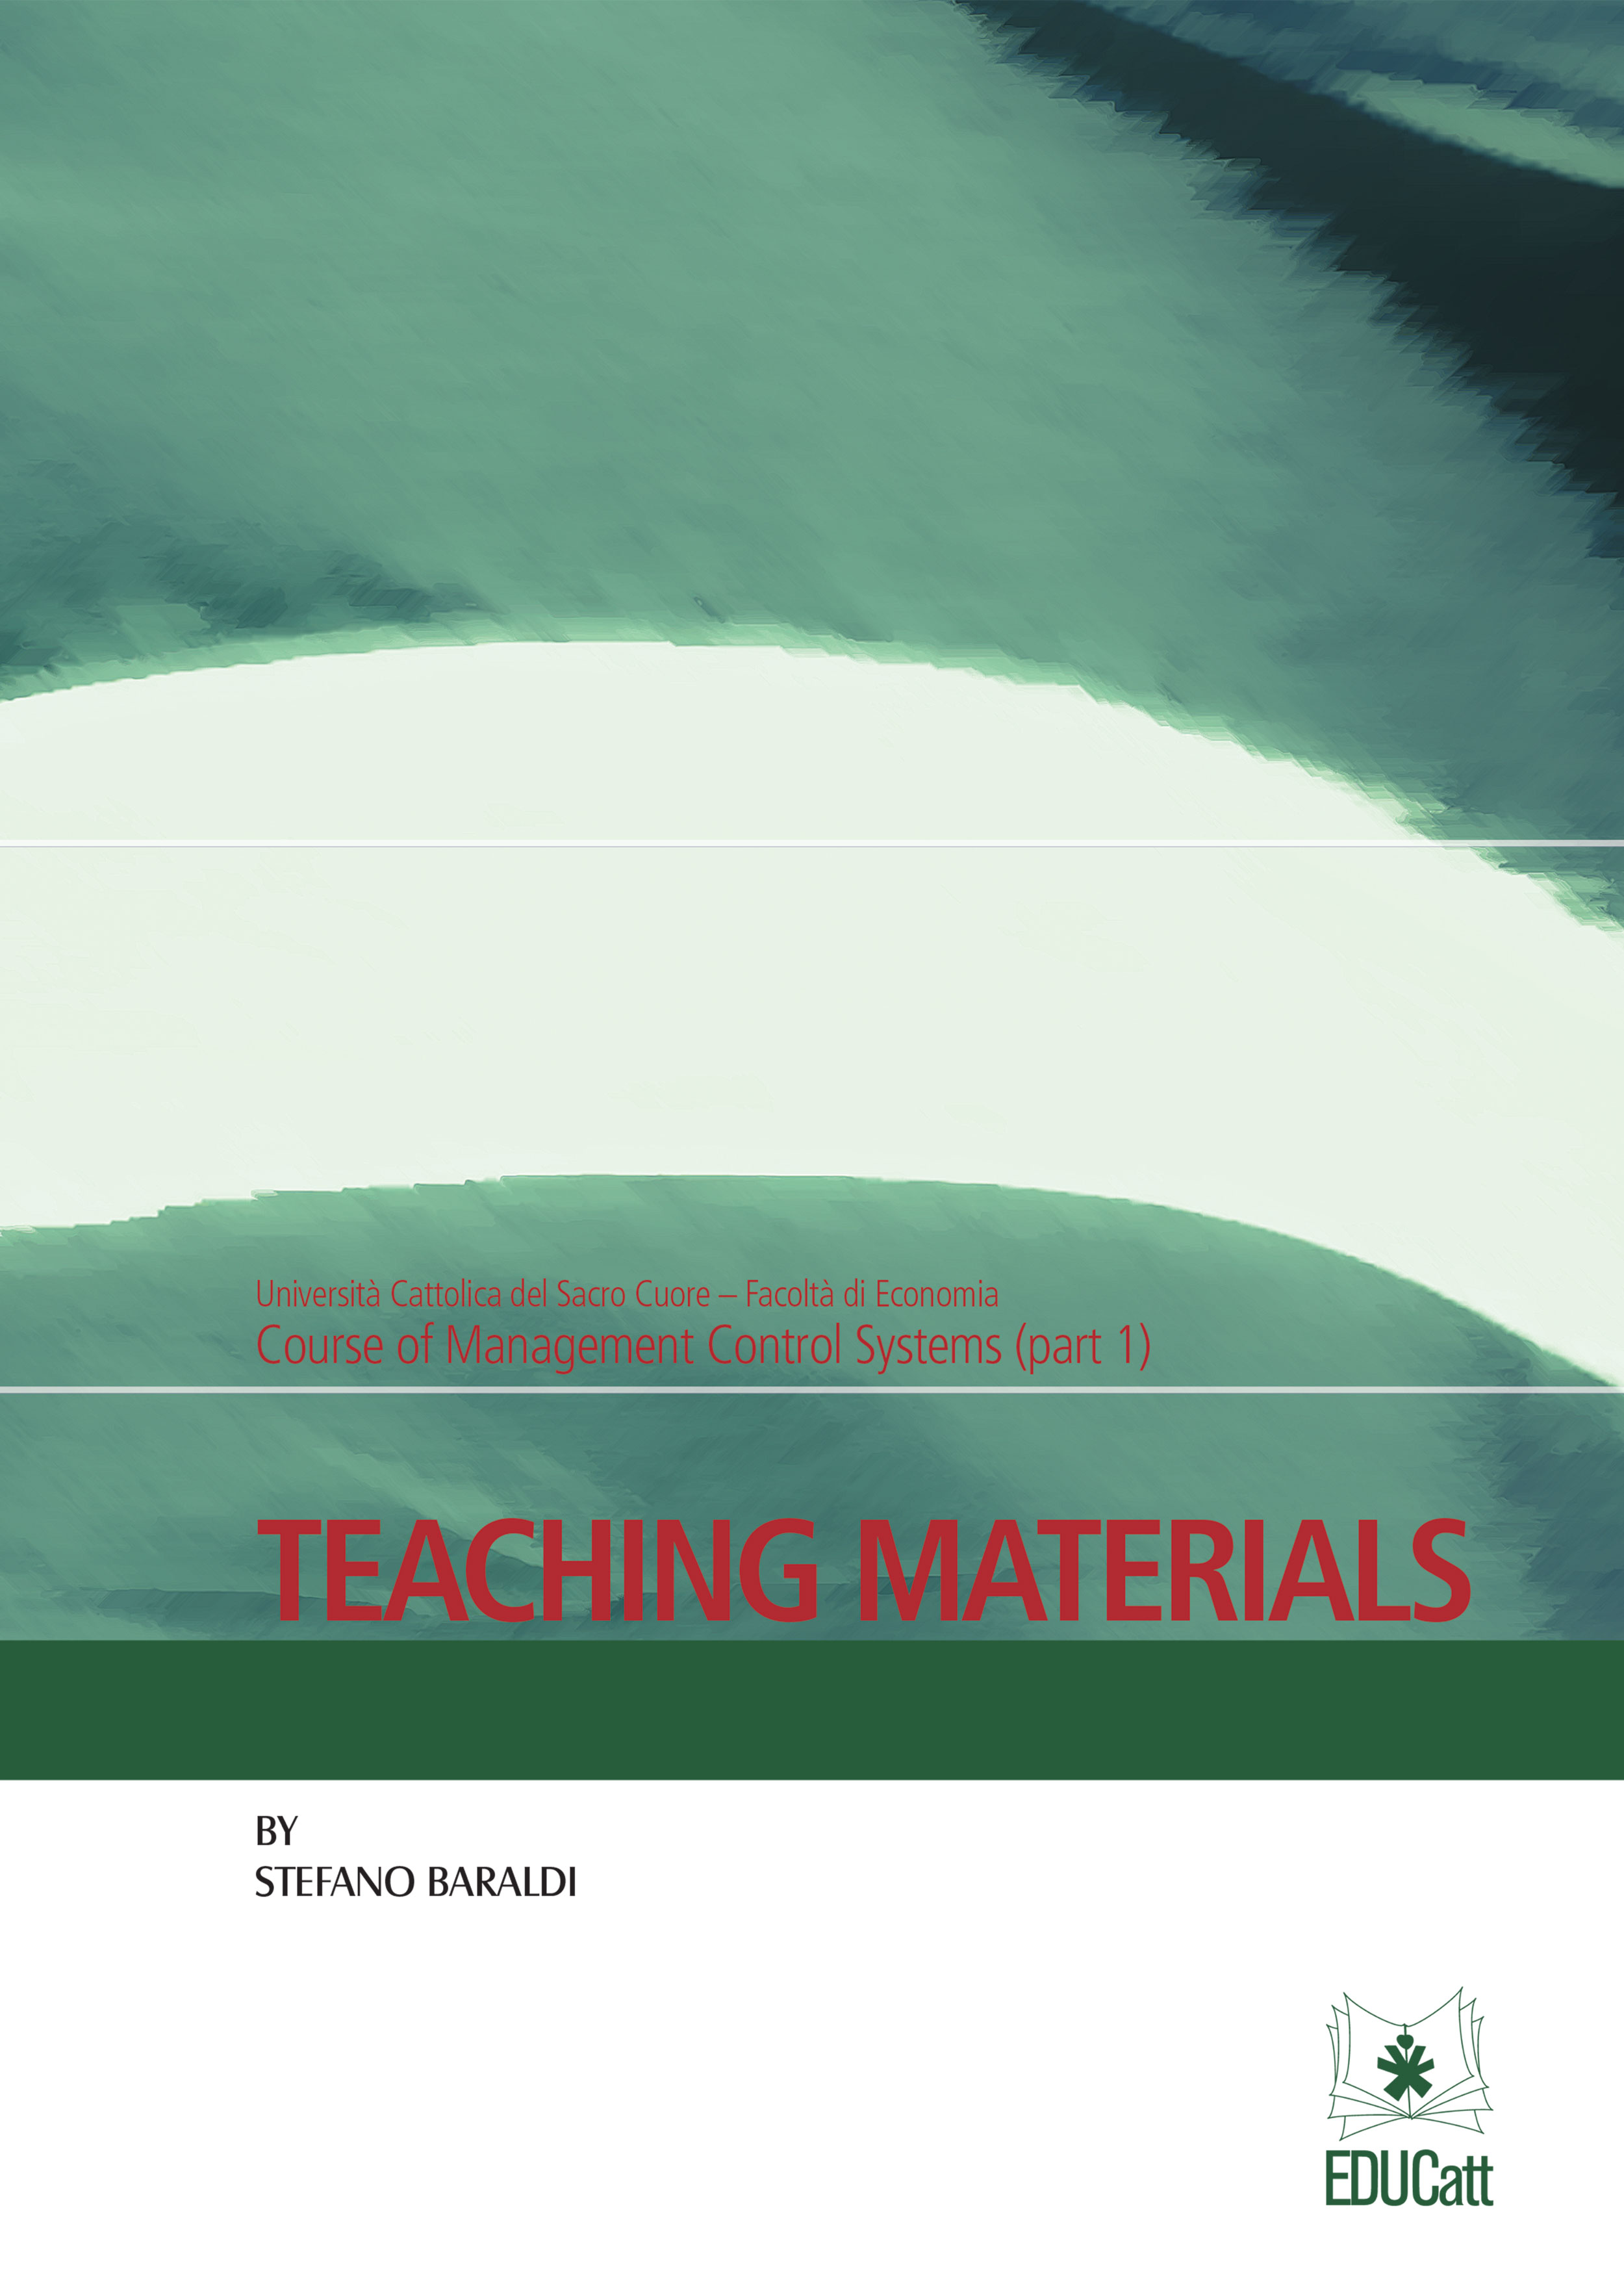 TEACHING MATERIALS - COURSE OF MANAGEMENT CONTROL SYSTEMS (PART 1)